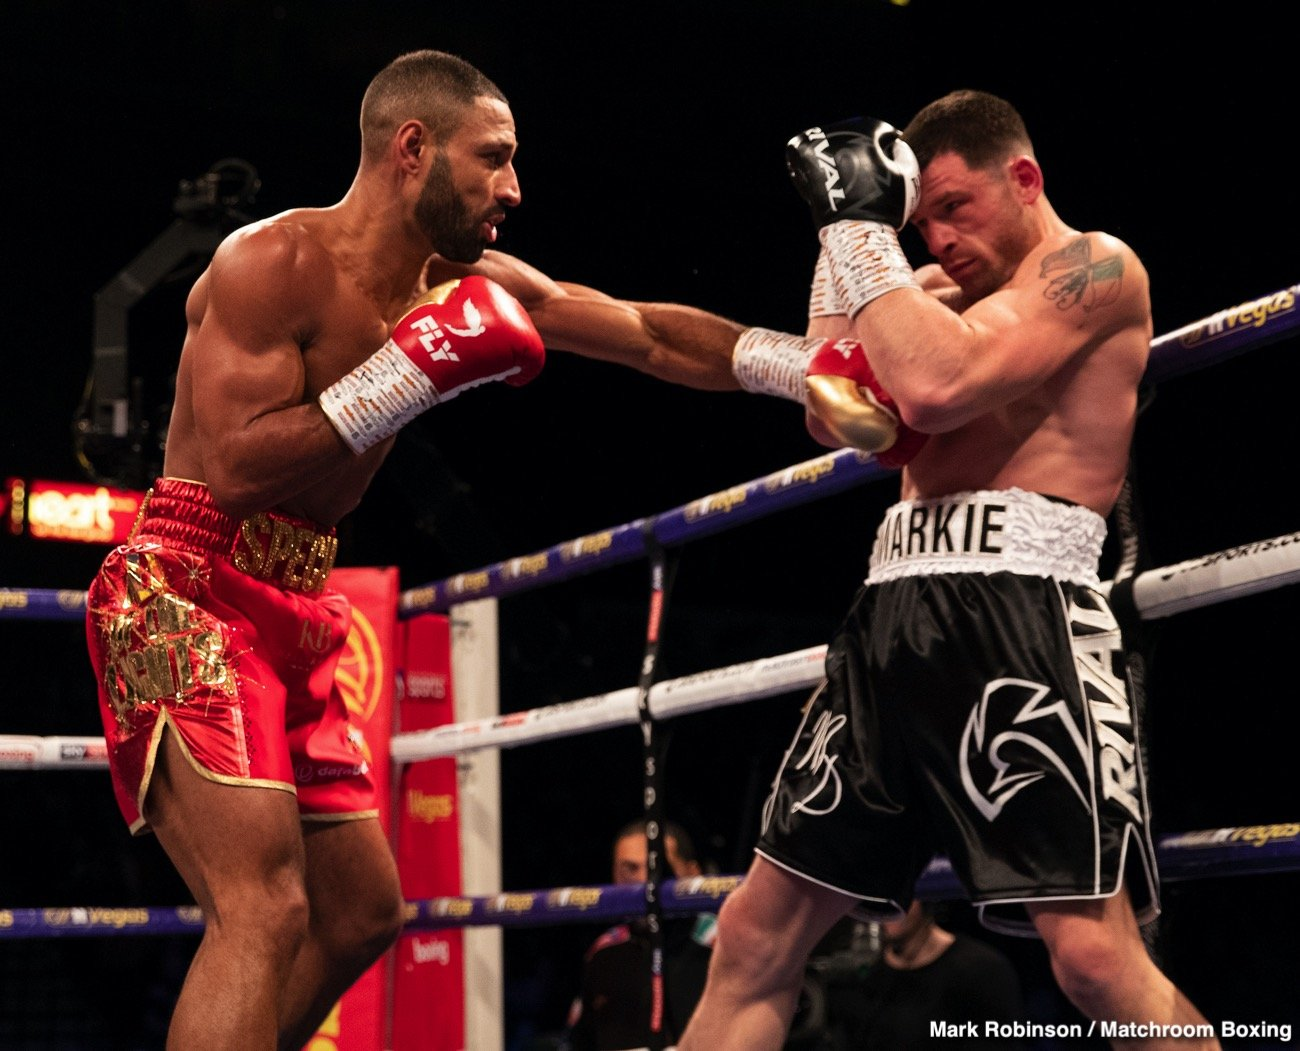 Kell Brook - Kell Brook (39-2, 27 KOs) came back from a 14 month layoff to conquer Mark DeLuca (24-2, 13 KOs) in a 7th round KO on Saturday night at the Sheffield Arena in Sheffield, England.